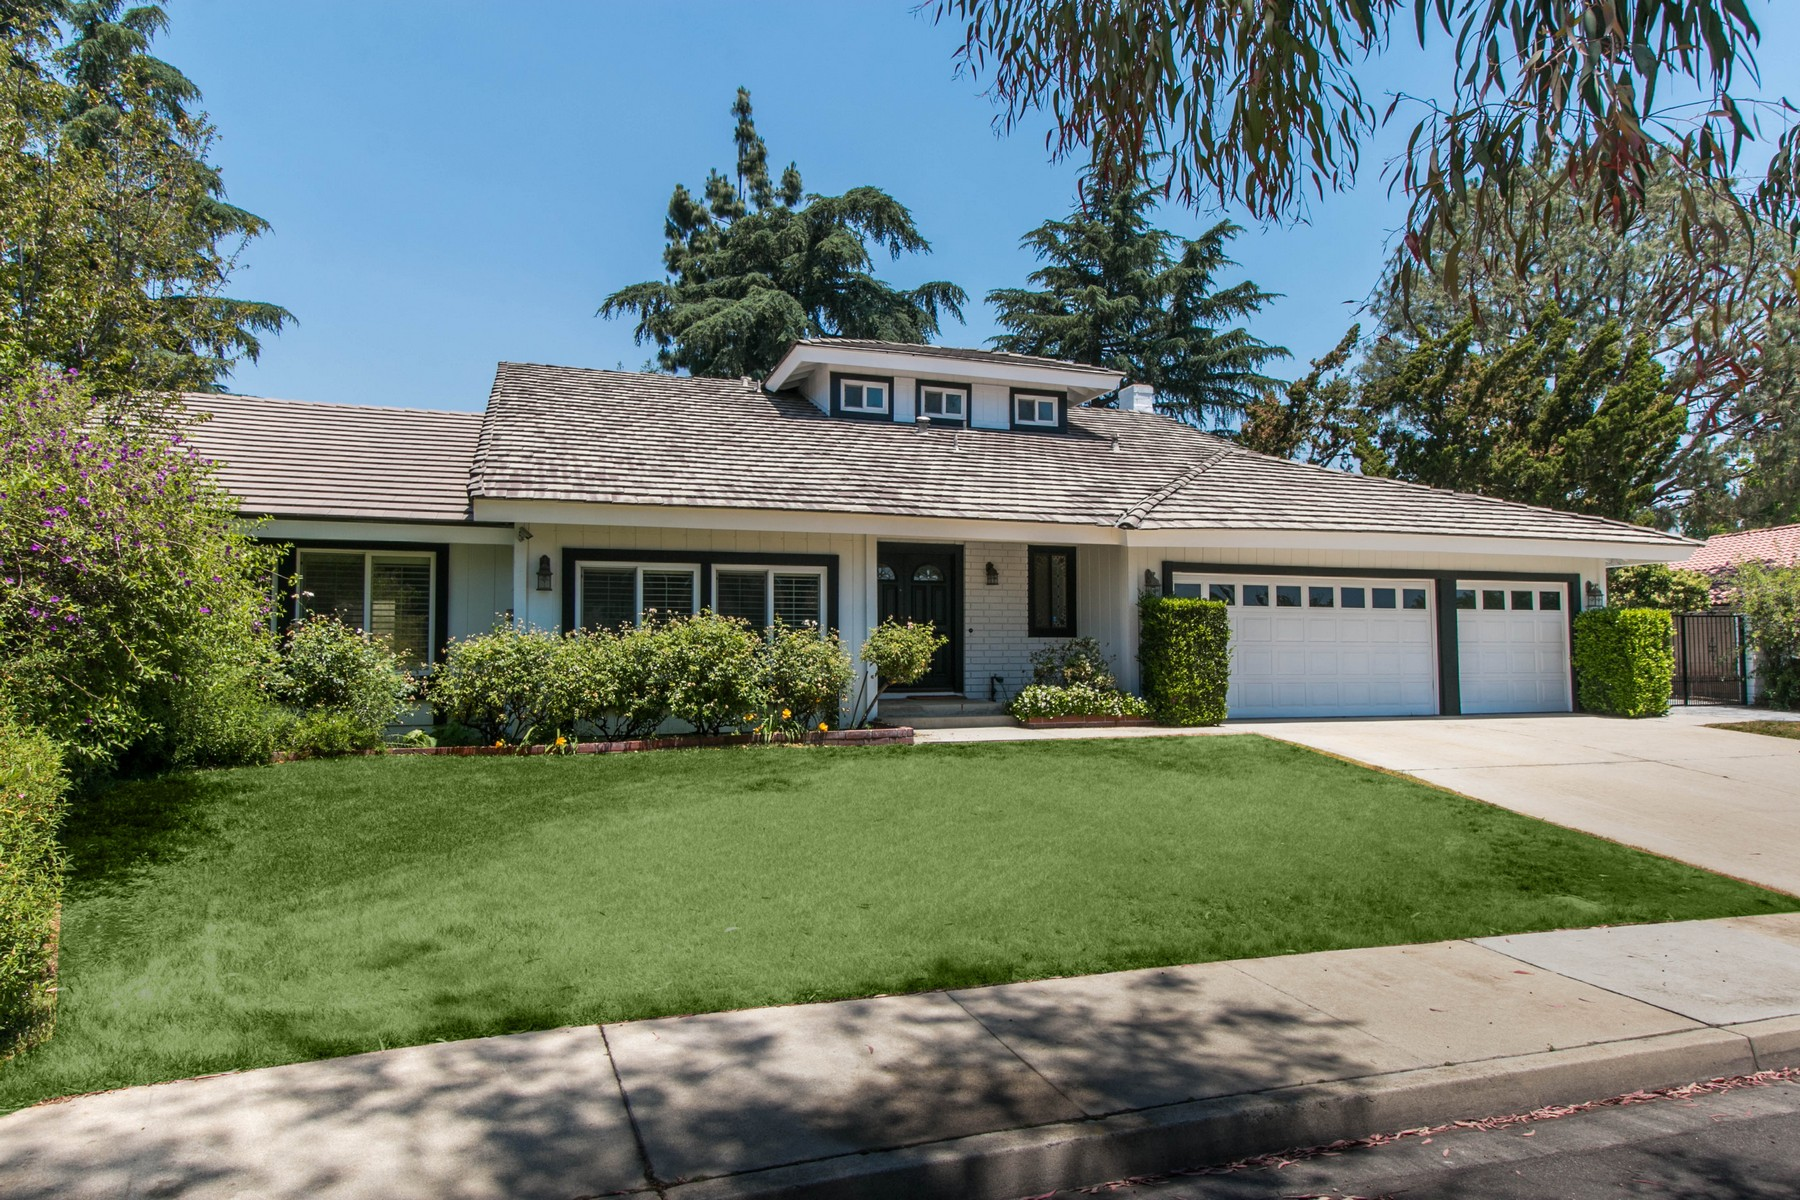 Single Family Homes for Sale at 367 Duchesne Court, Claremont, CA 91711 367 Duchesne Court Claremont, California 91711 United States